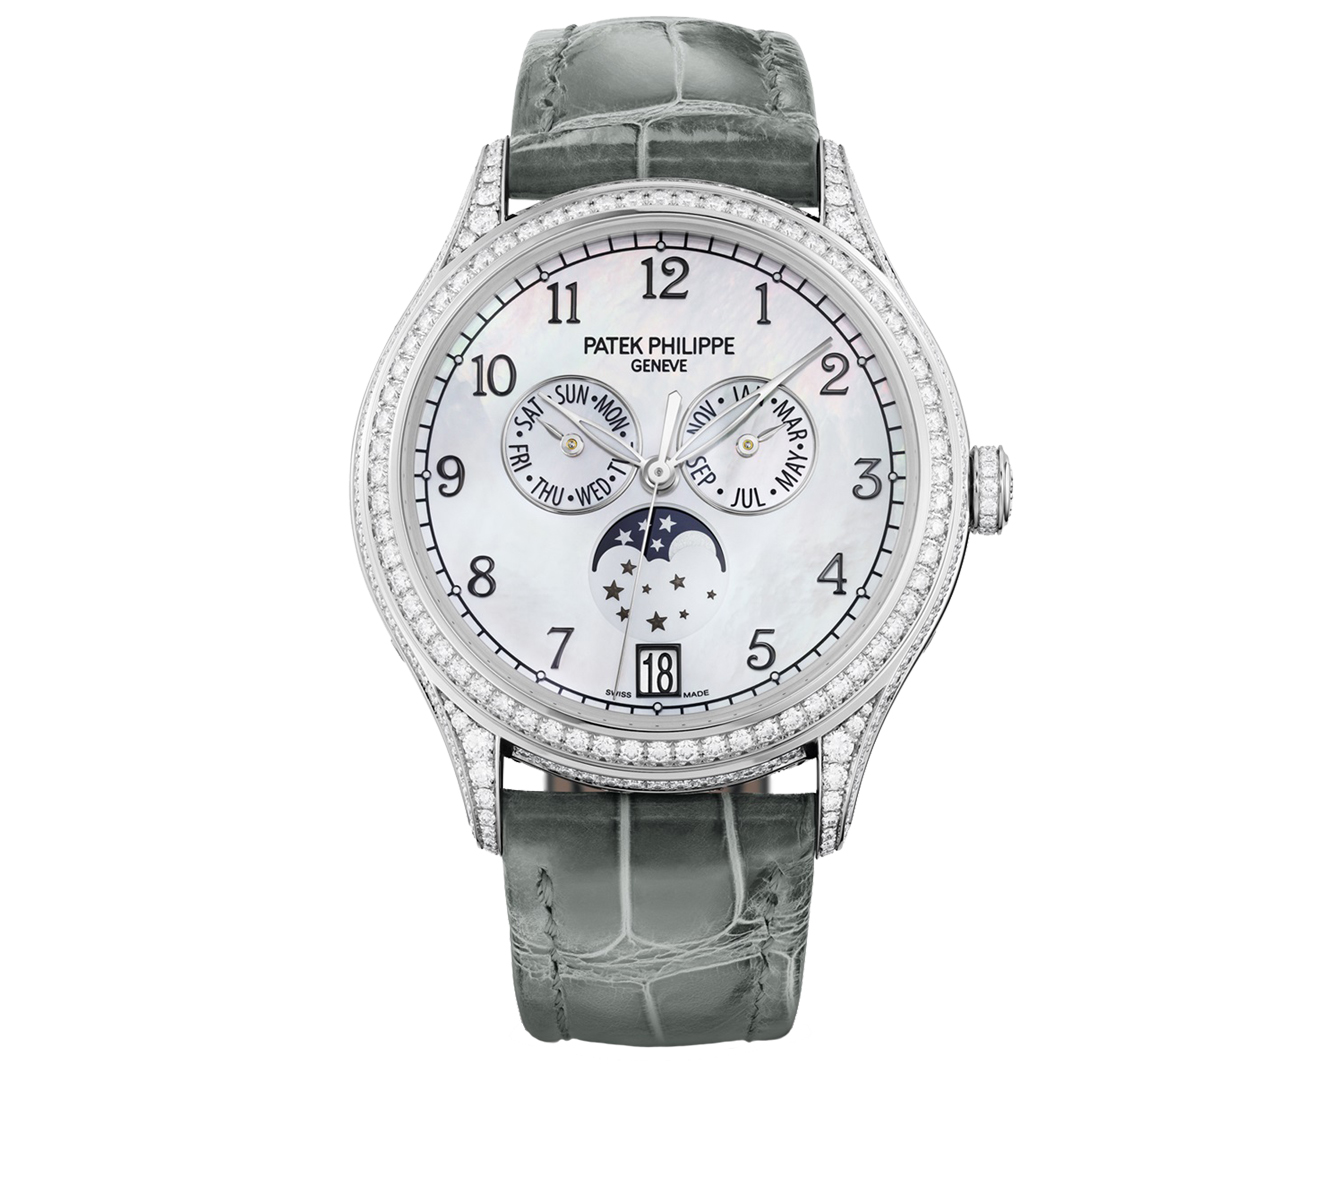 Часы Annual Calendar PATEK PHILIPPE Complications 4948 G-010 - фото 1 – Mercury